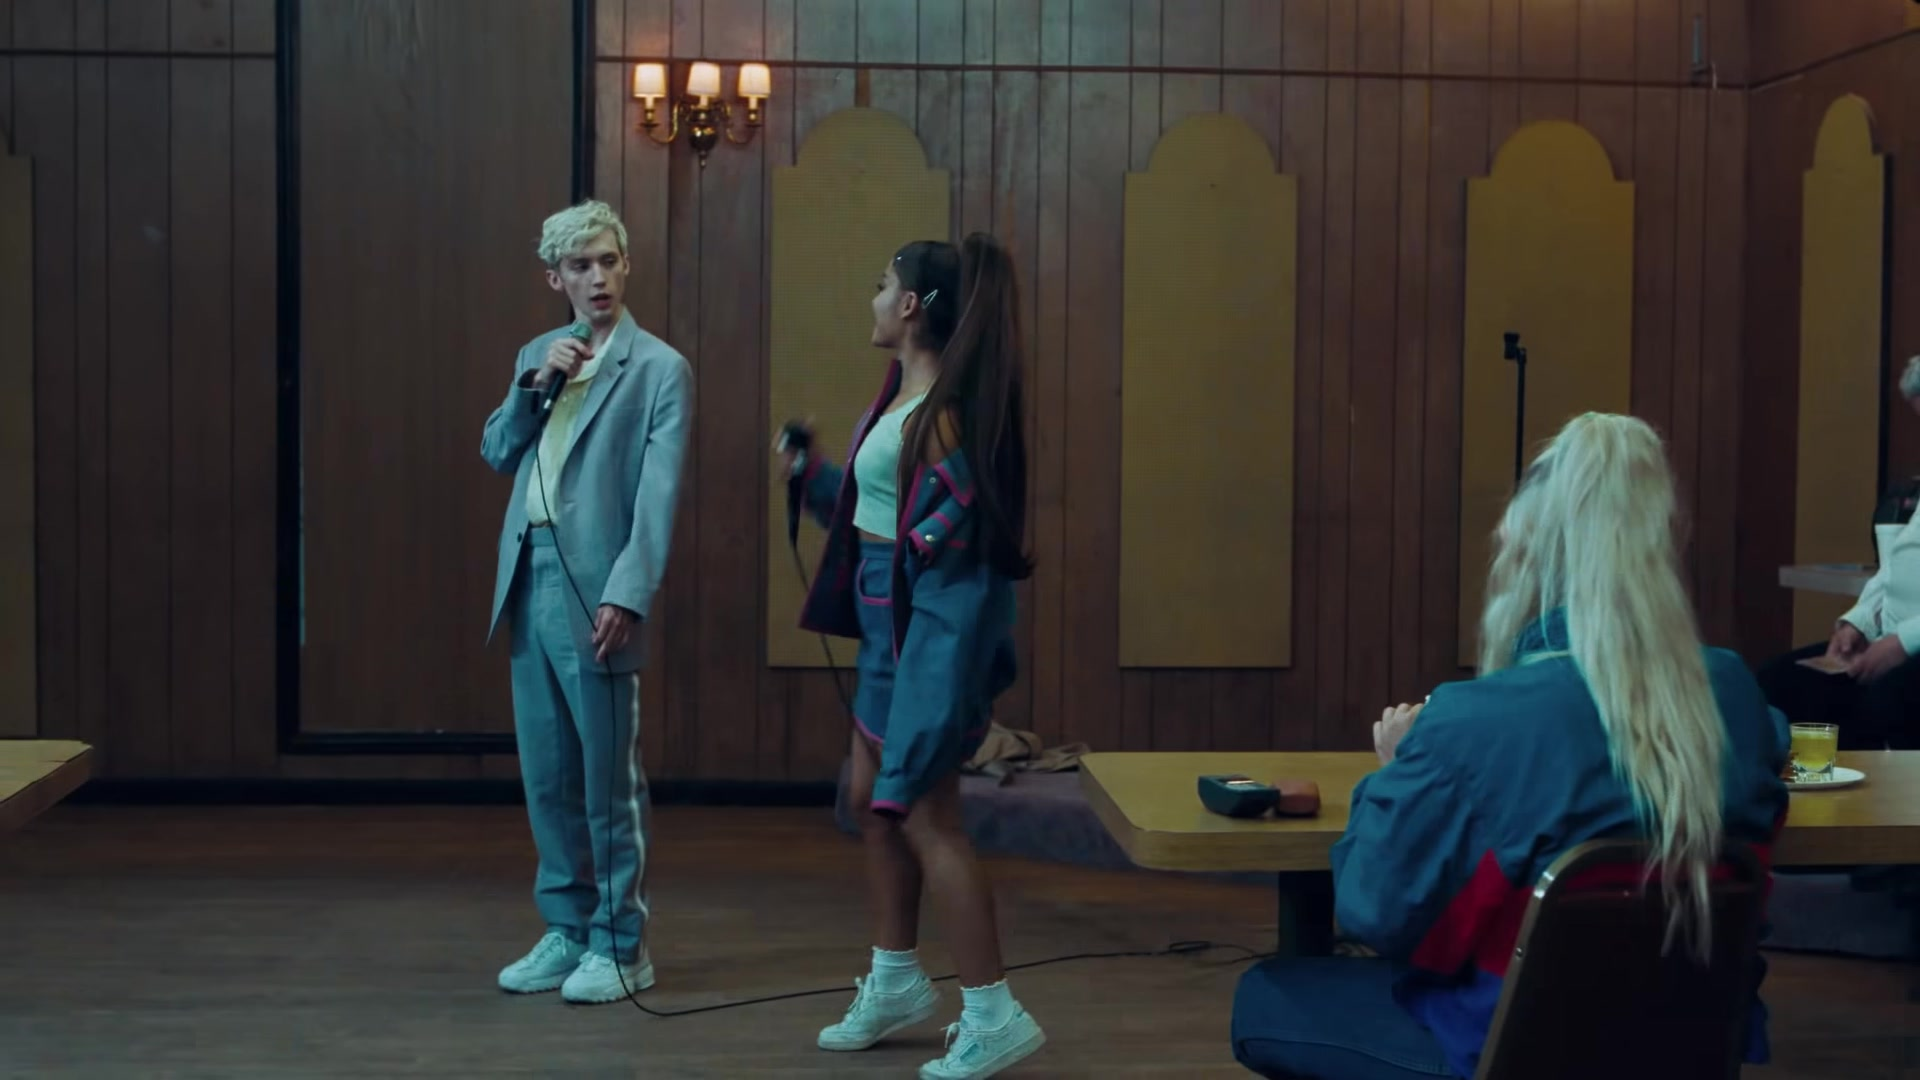 fila sneakers worn by troye sivan in quotdance to thisquot ft